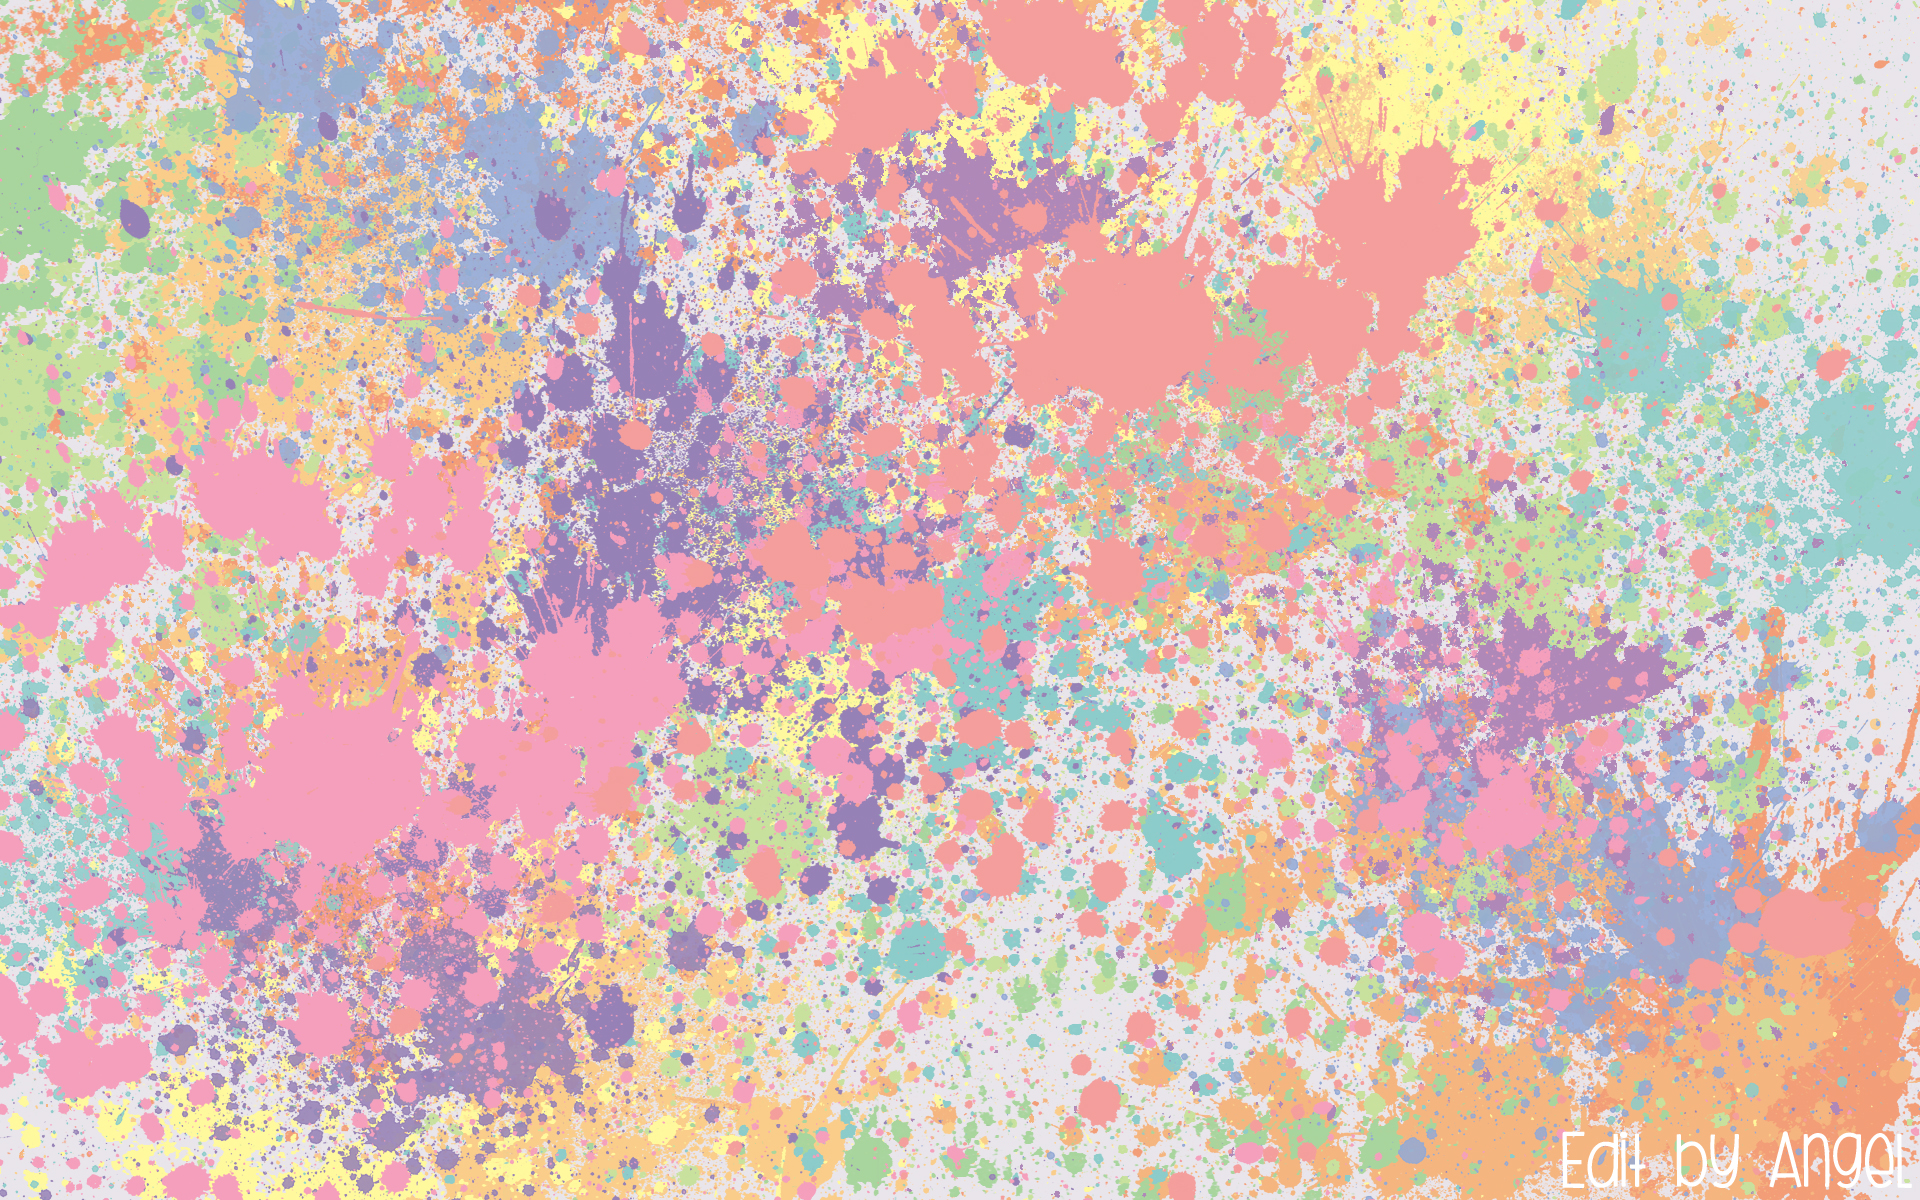 Pastel Splat Wallpaper by foolish angel 1920x1200